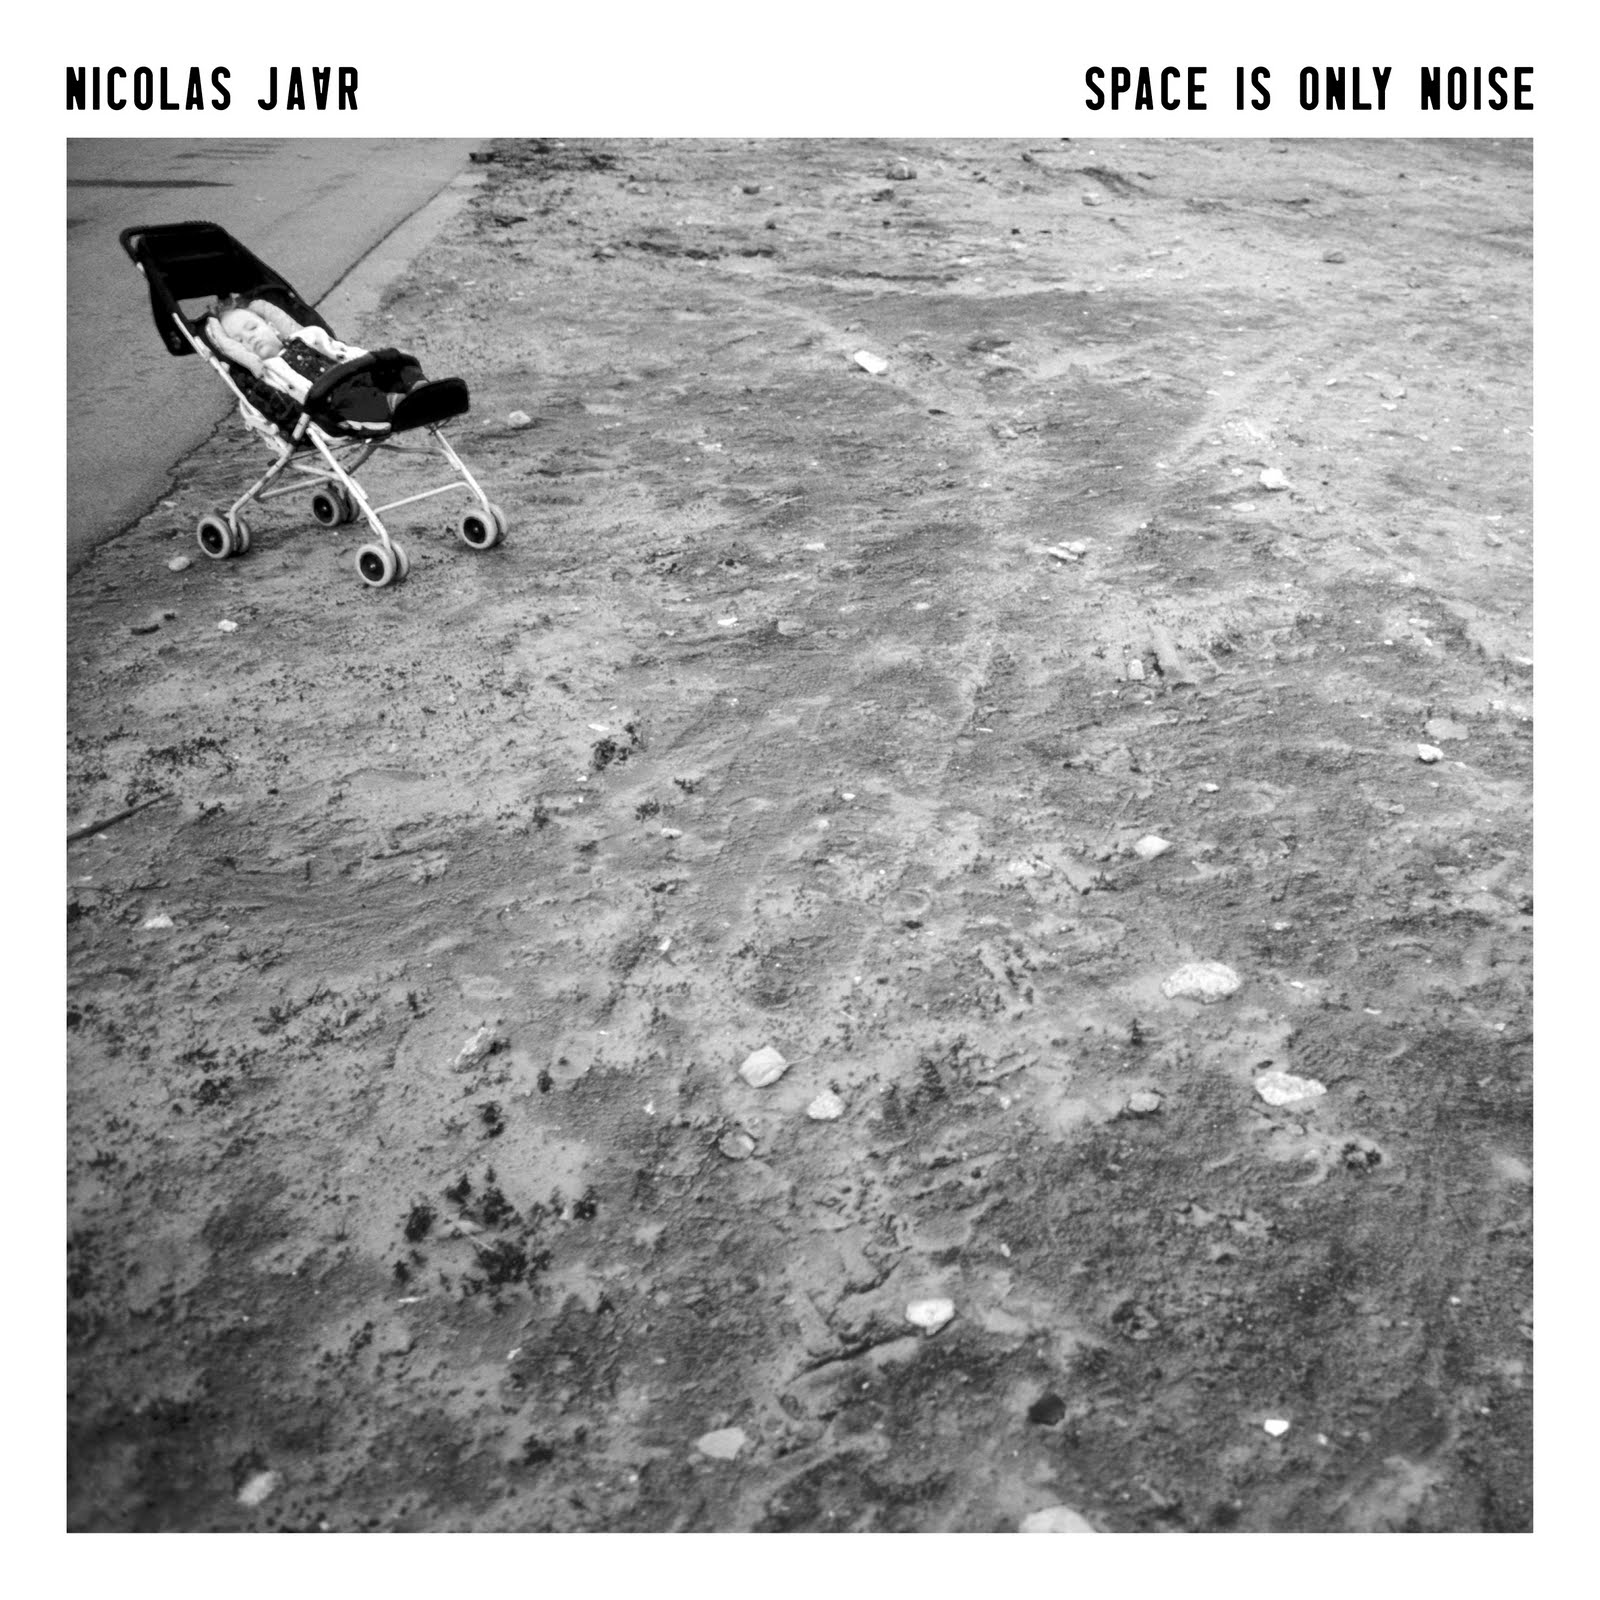 Nicolas Jaar x Alfredo Jaar - Space Is Only Noise (2011)